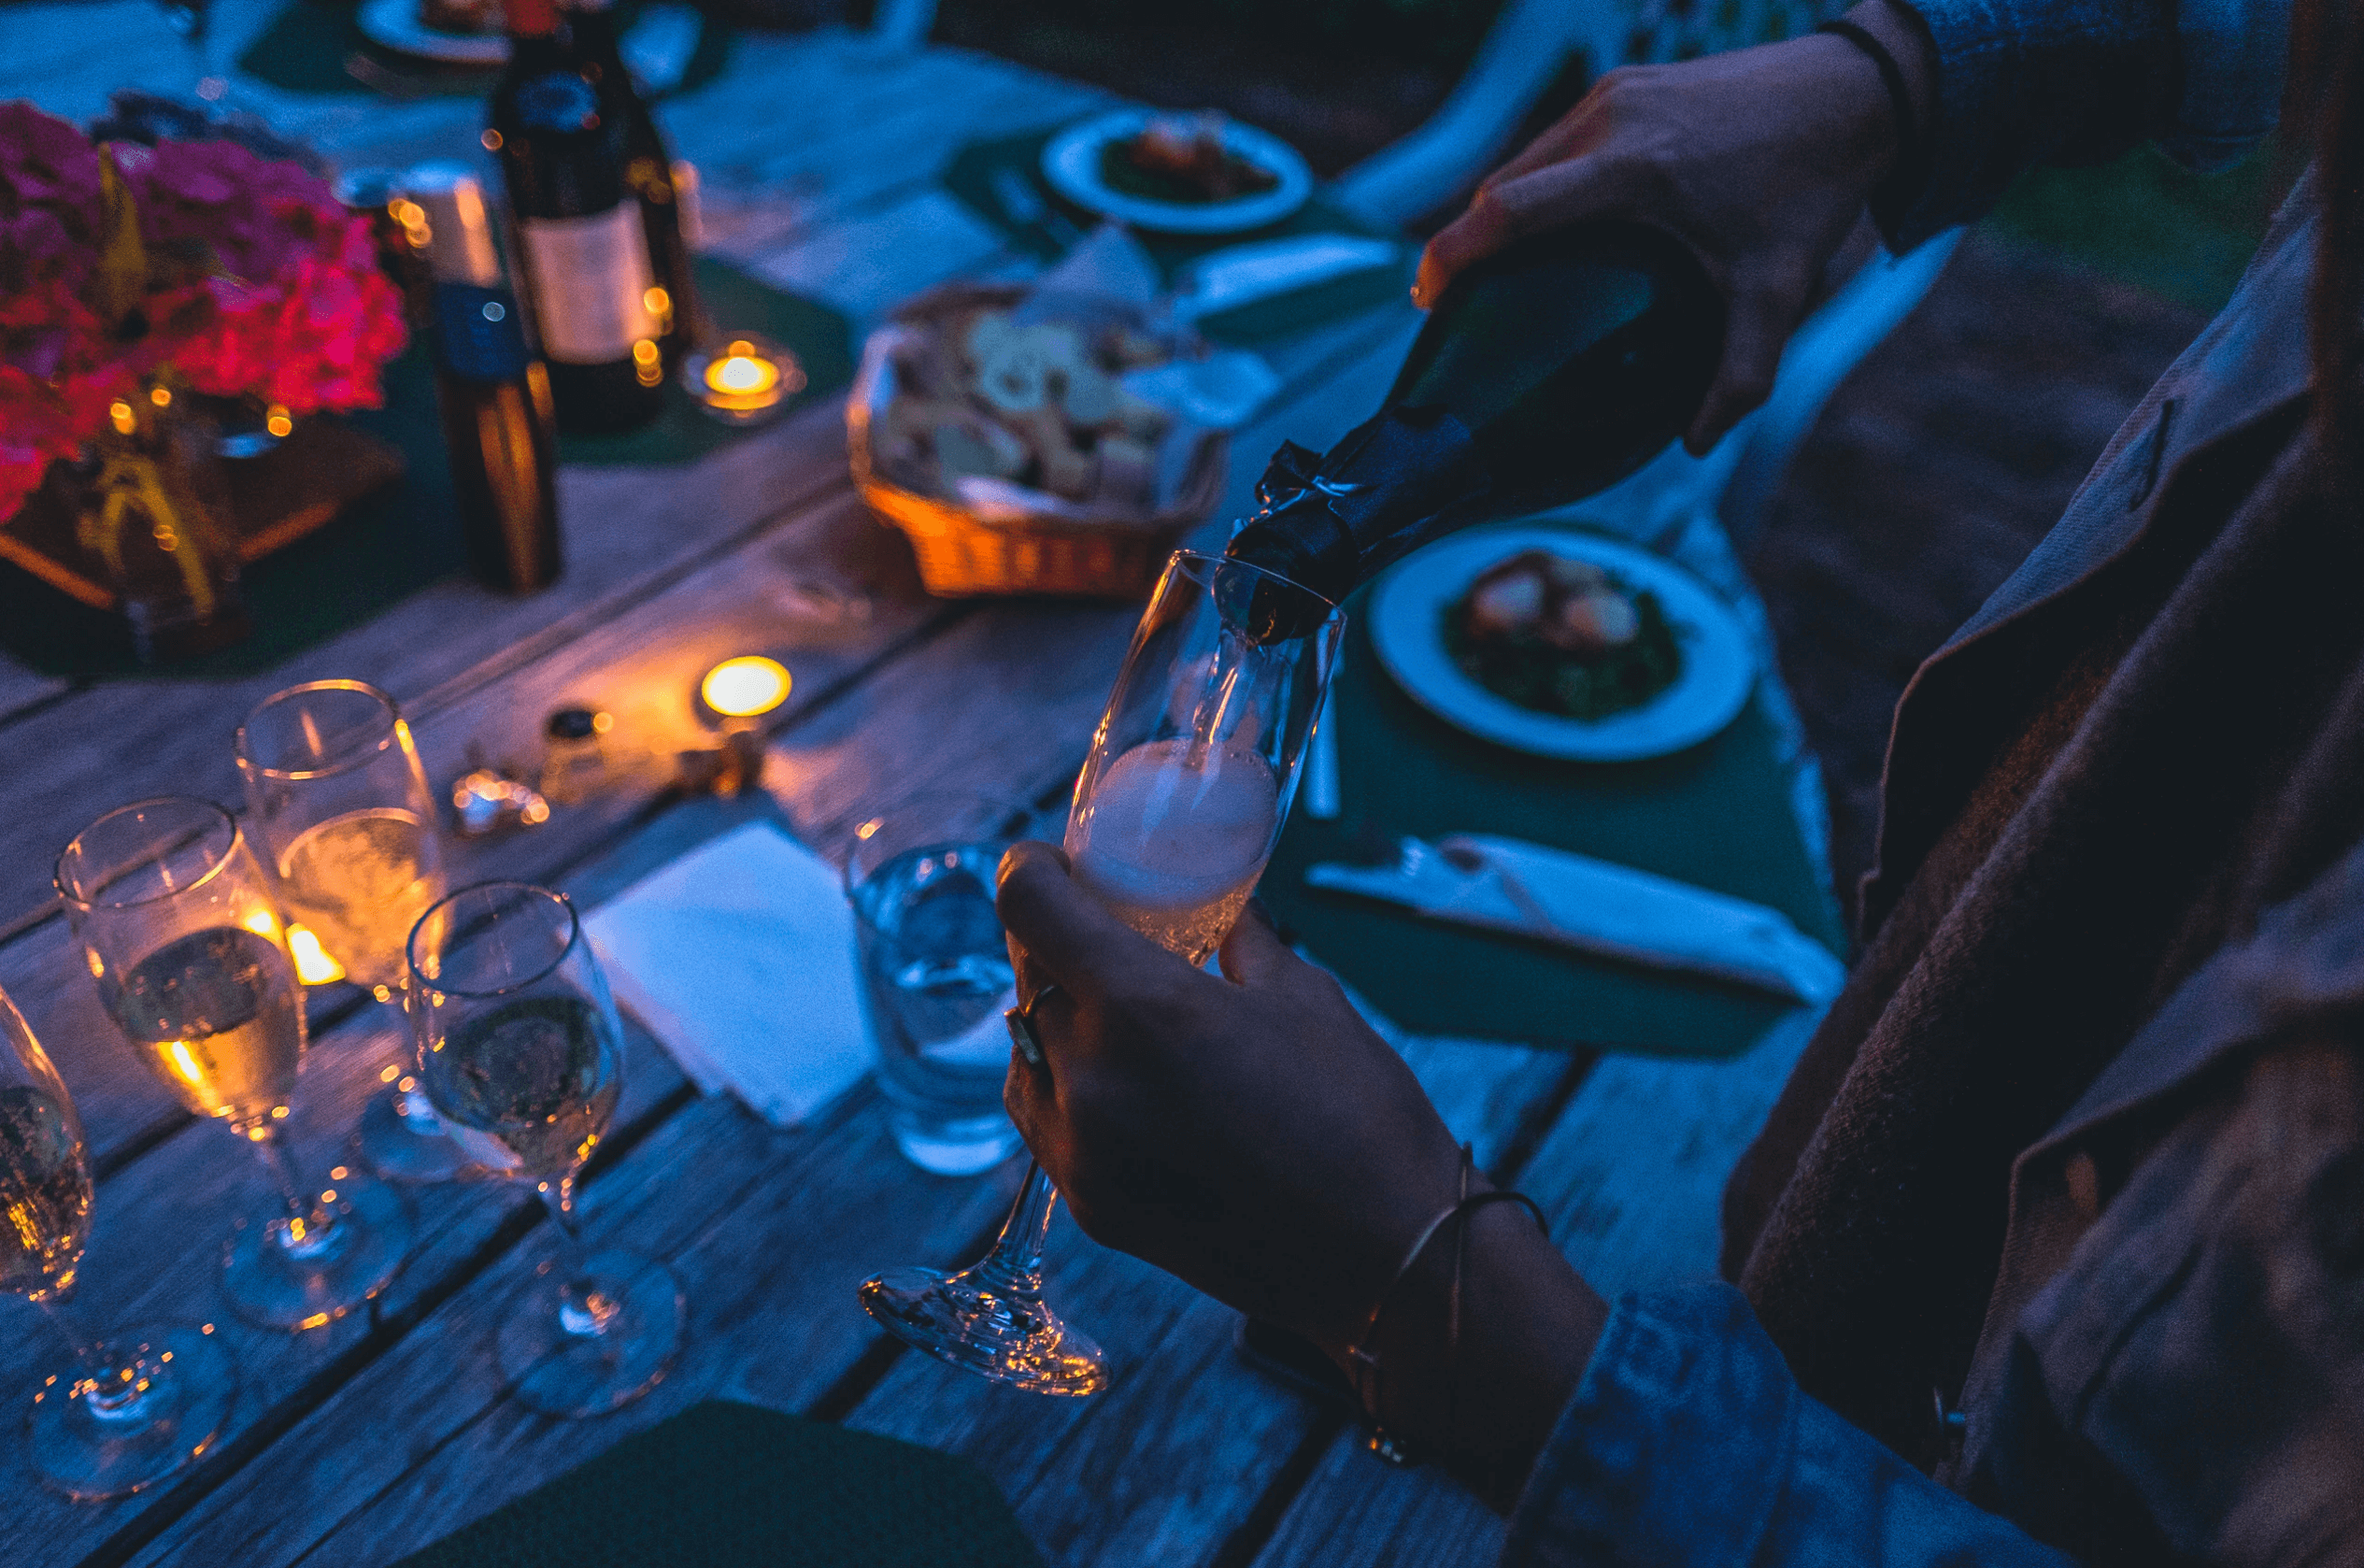 Enhanced dark outdoor round wood slat table with champagne glasses and flood and tea light with hands pouring champagne in glass